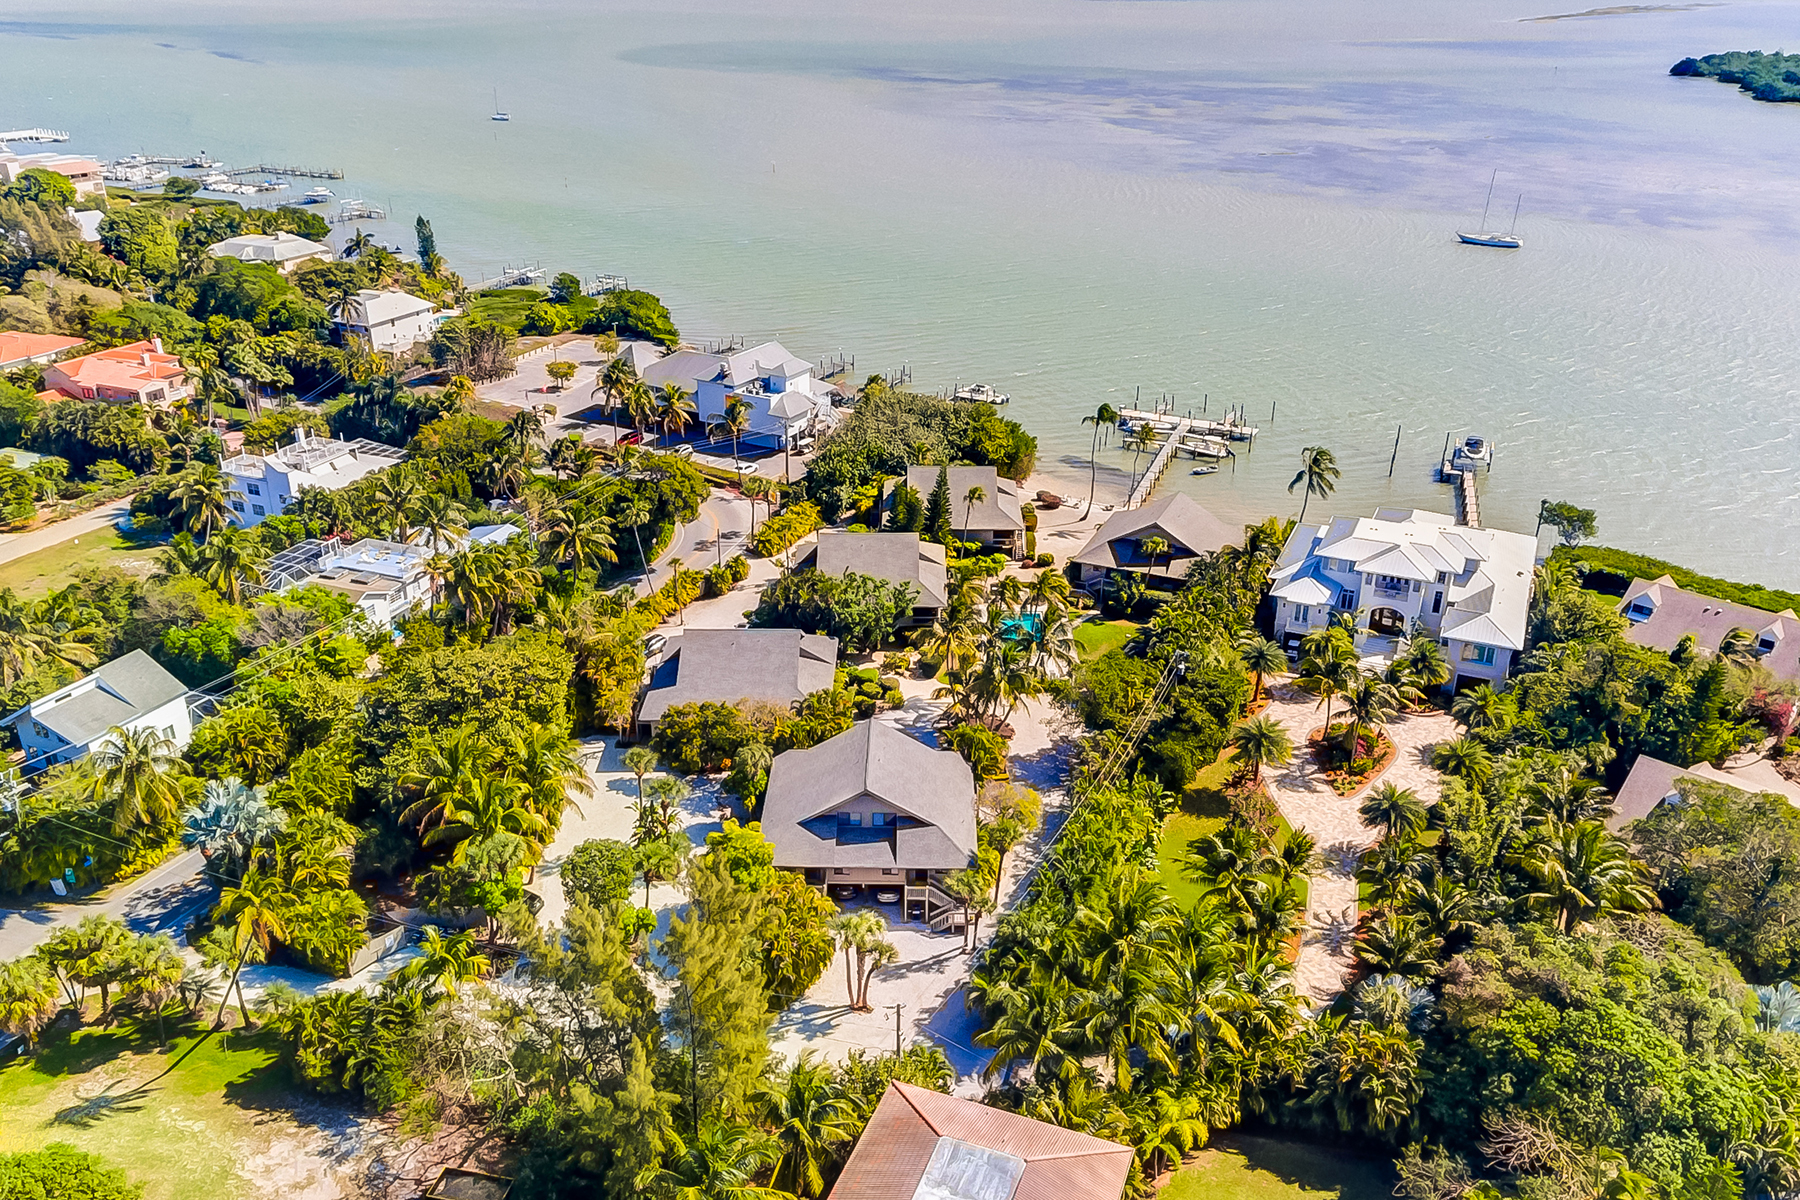 Condominium for Sale at CAPTIVA 15291 Captiva Dr, Captiva, Florida 33924 United States